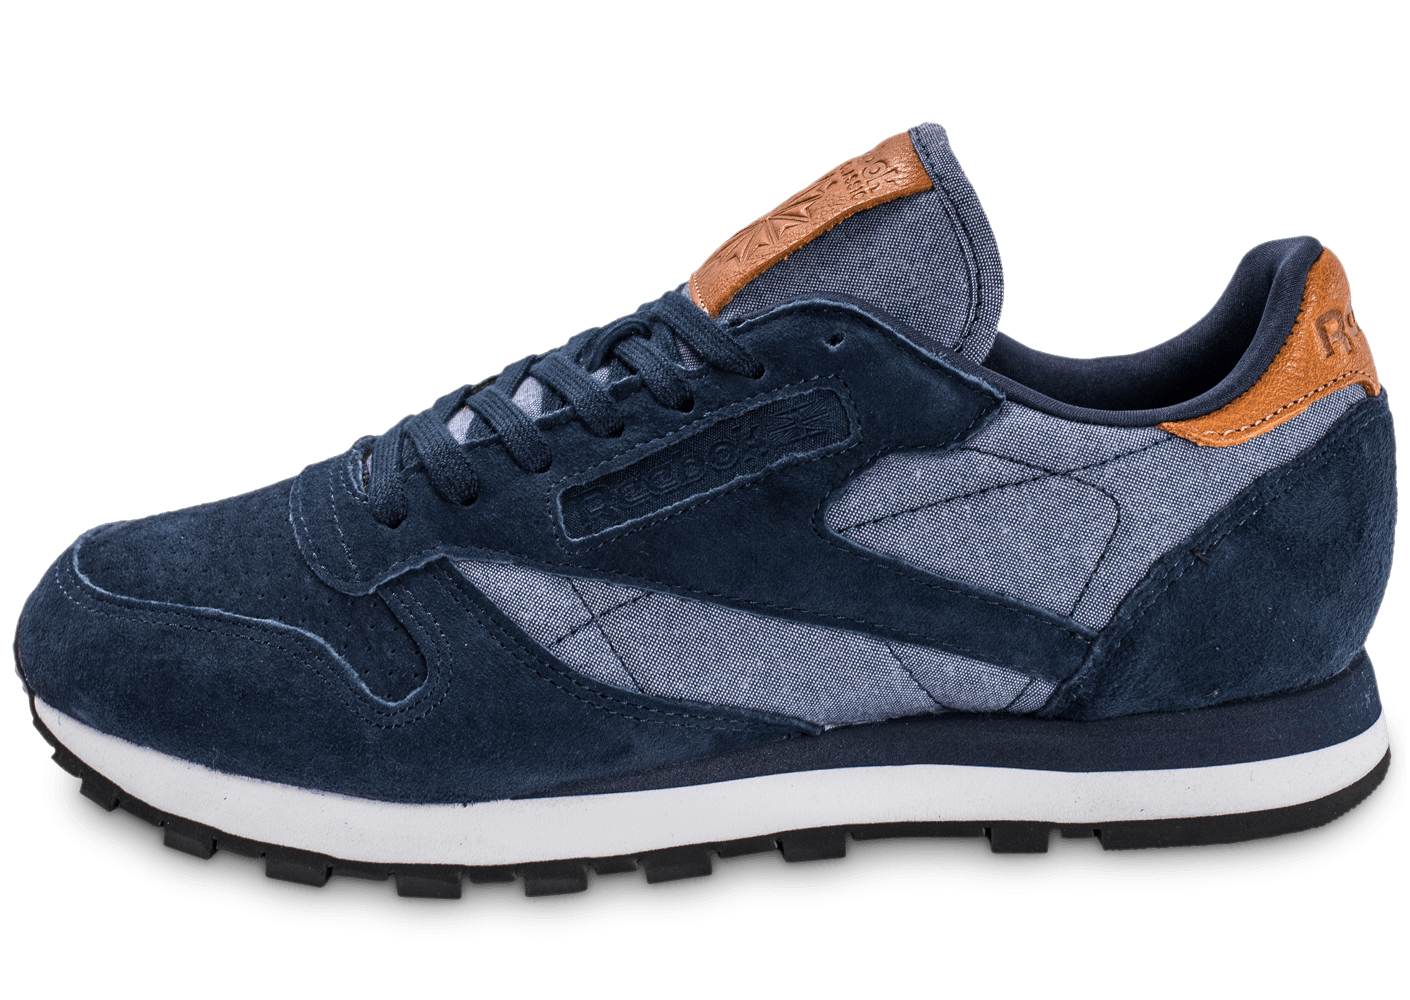 1ae7ed9f42075 Reebok Classic Leather Chambray bleu marine - Chaussures Baskets homme -  Chausport